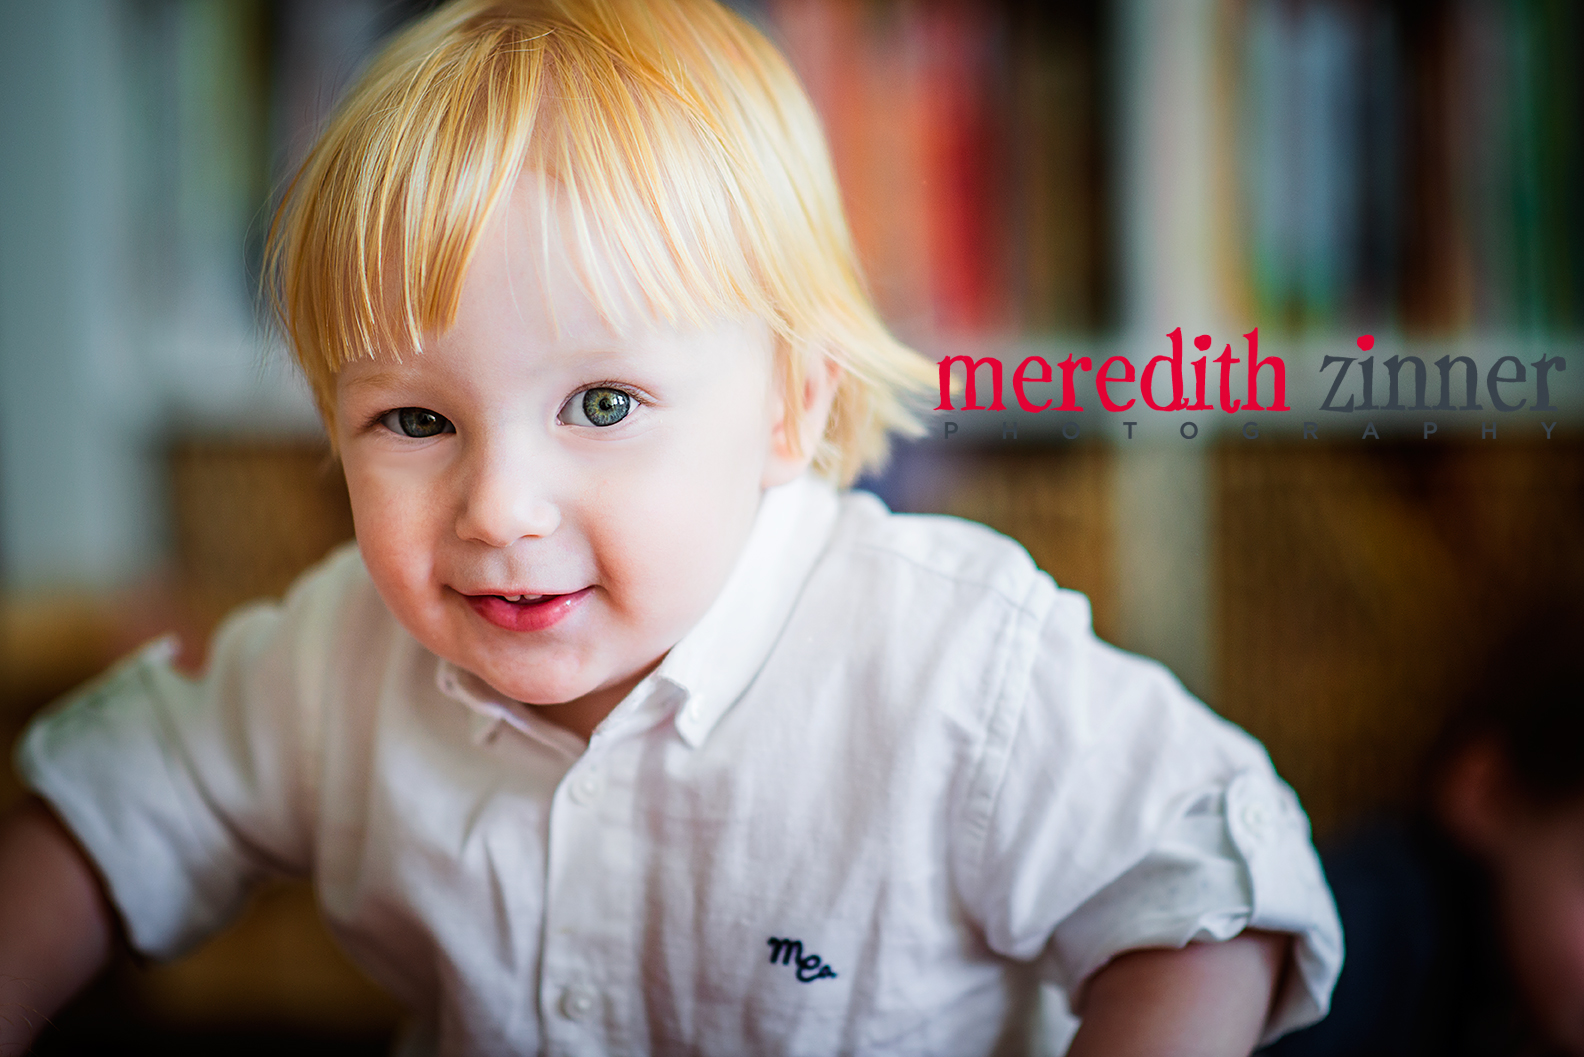 meredith-zinner-childhood-photography